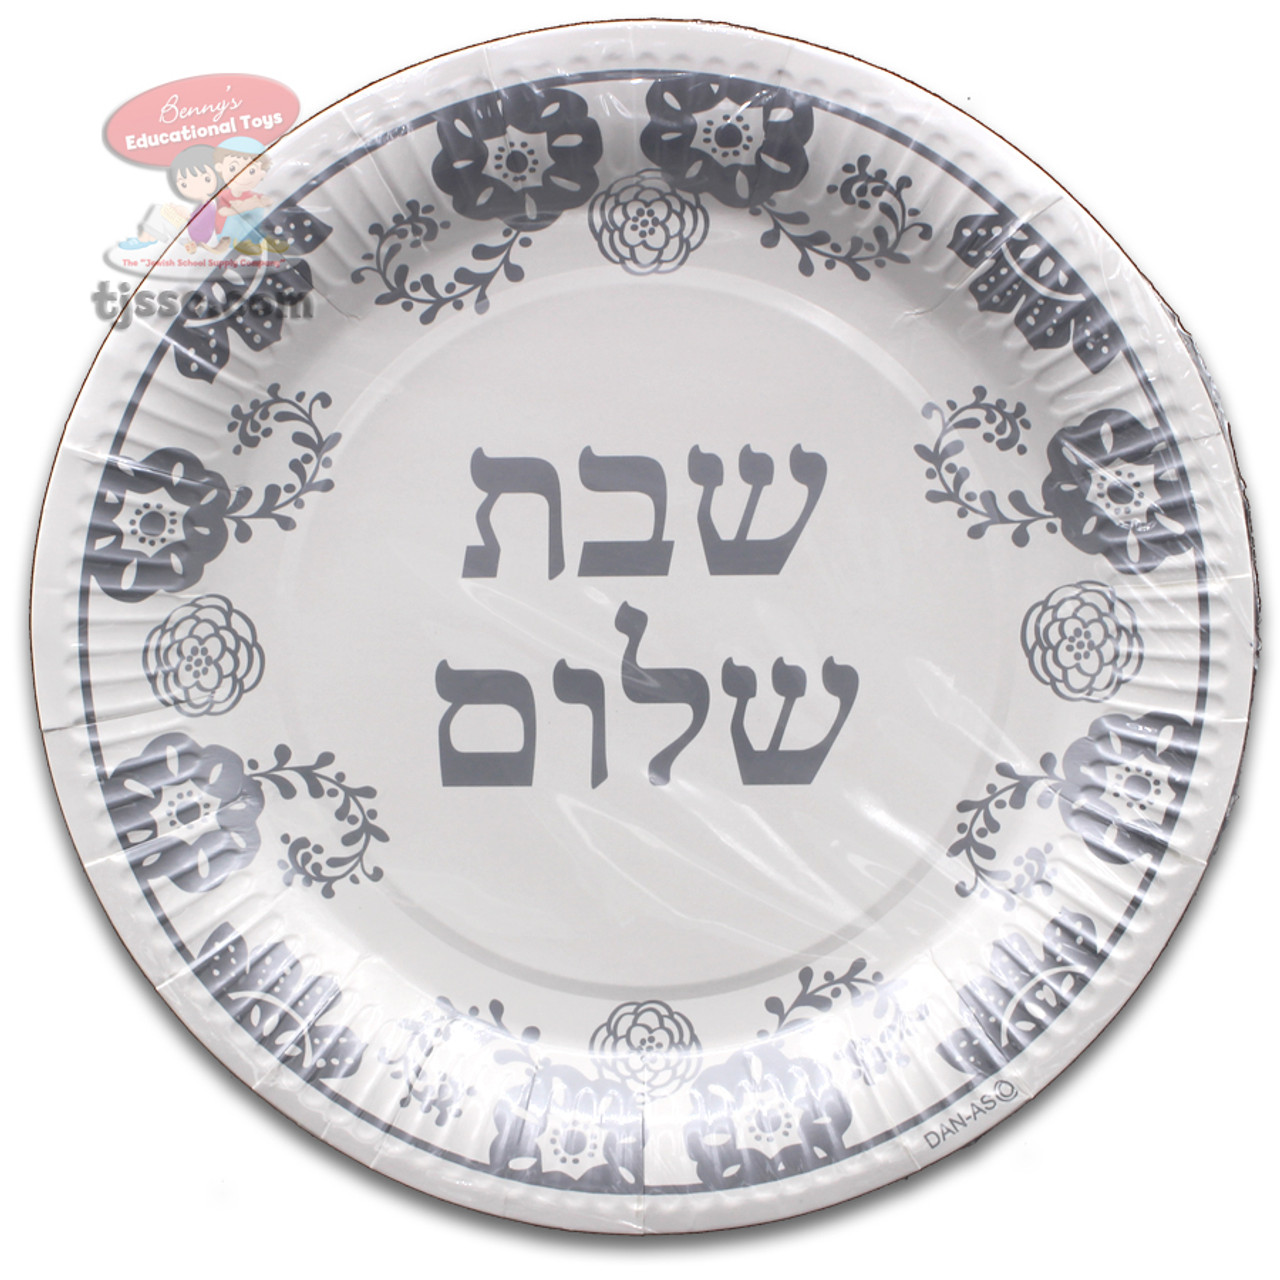 Shabbat Shalom Disposable Paper Plates in Hebrew (Silver)  sc 1 st  Bennyu0027s Educational Toys & Shabbat Shlaom (Shabbat Shalom in Hebrew) Disposable Paper Plates ...